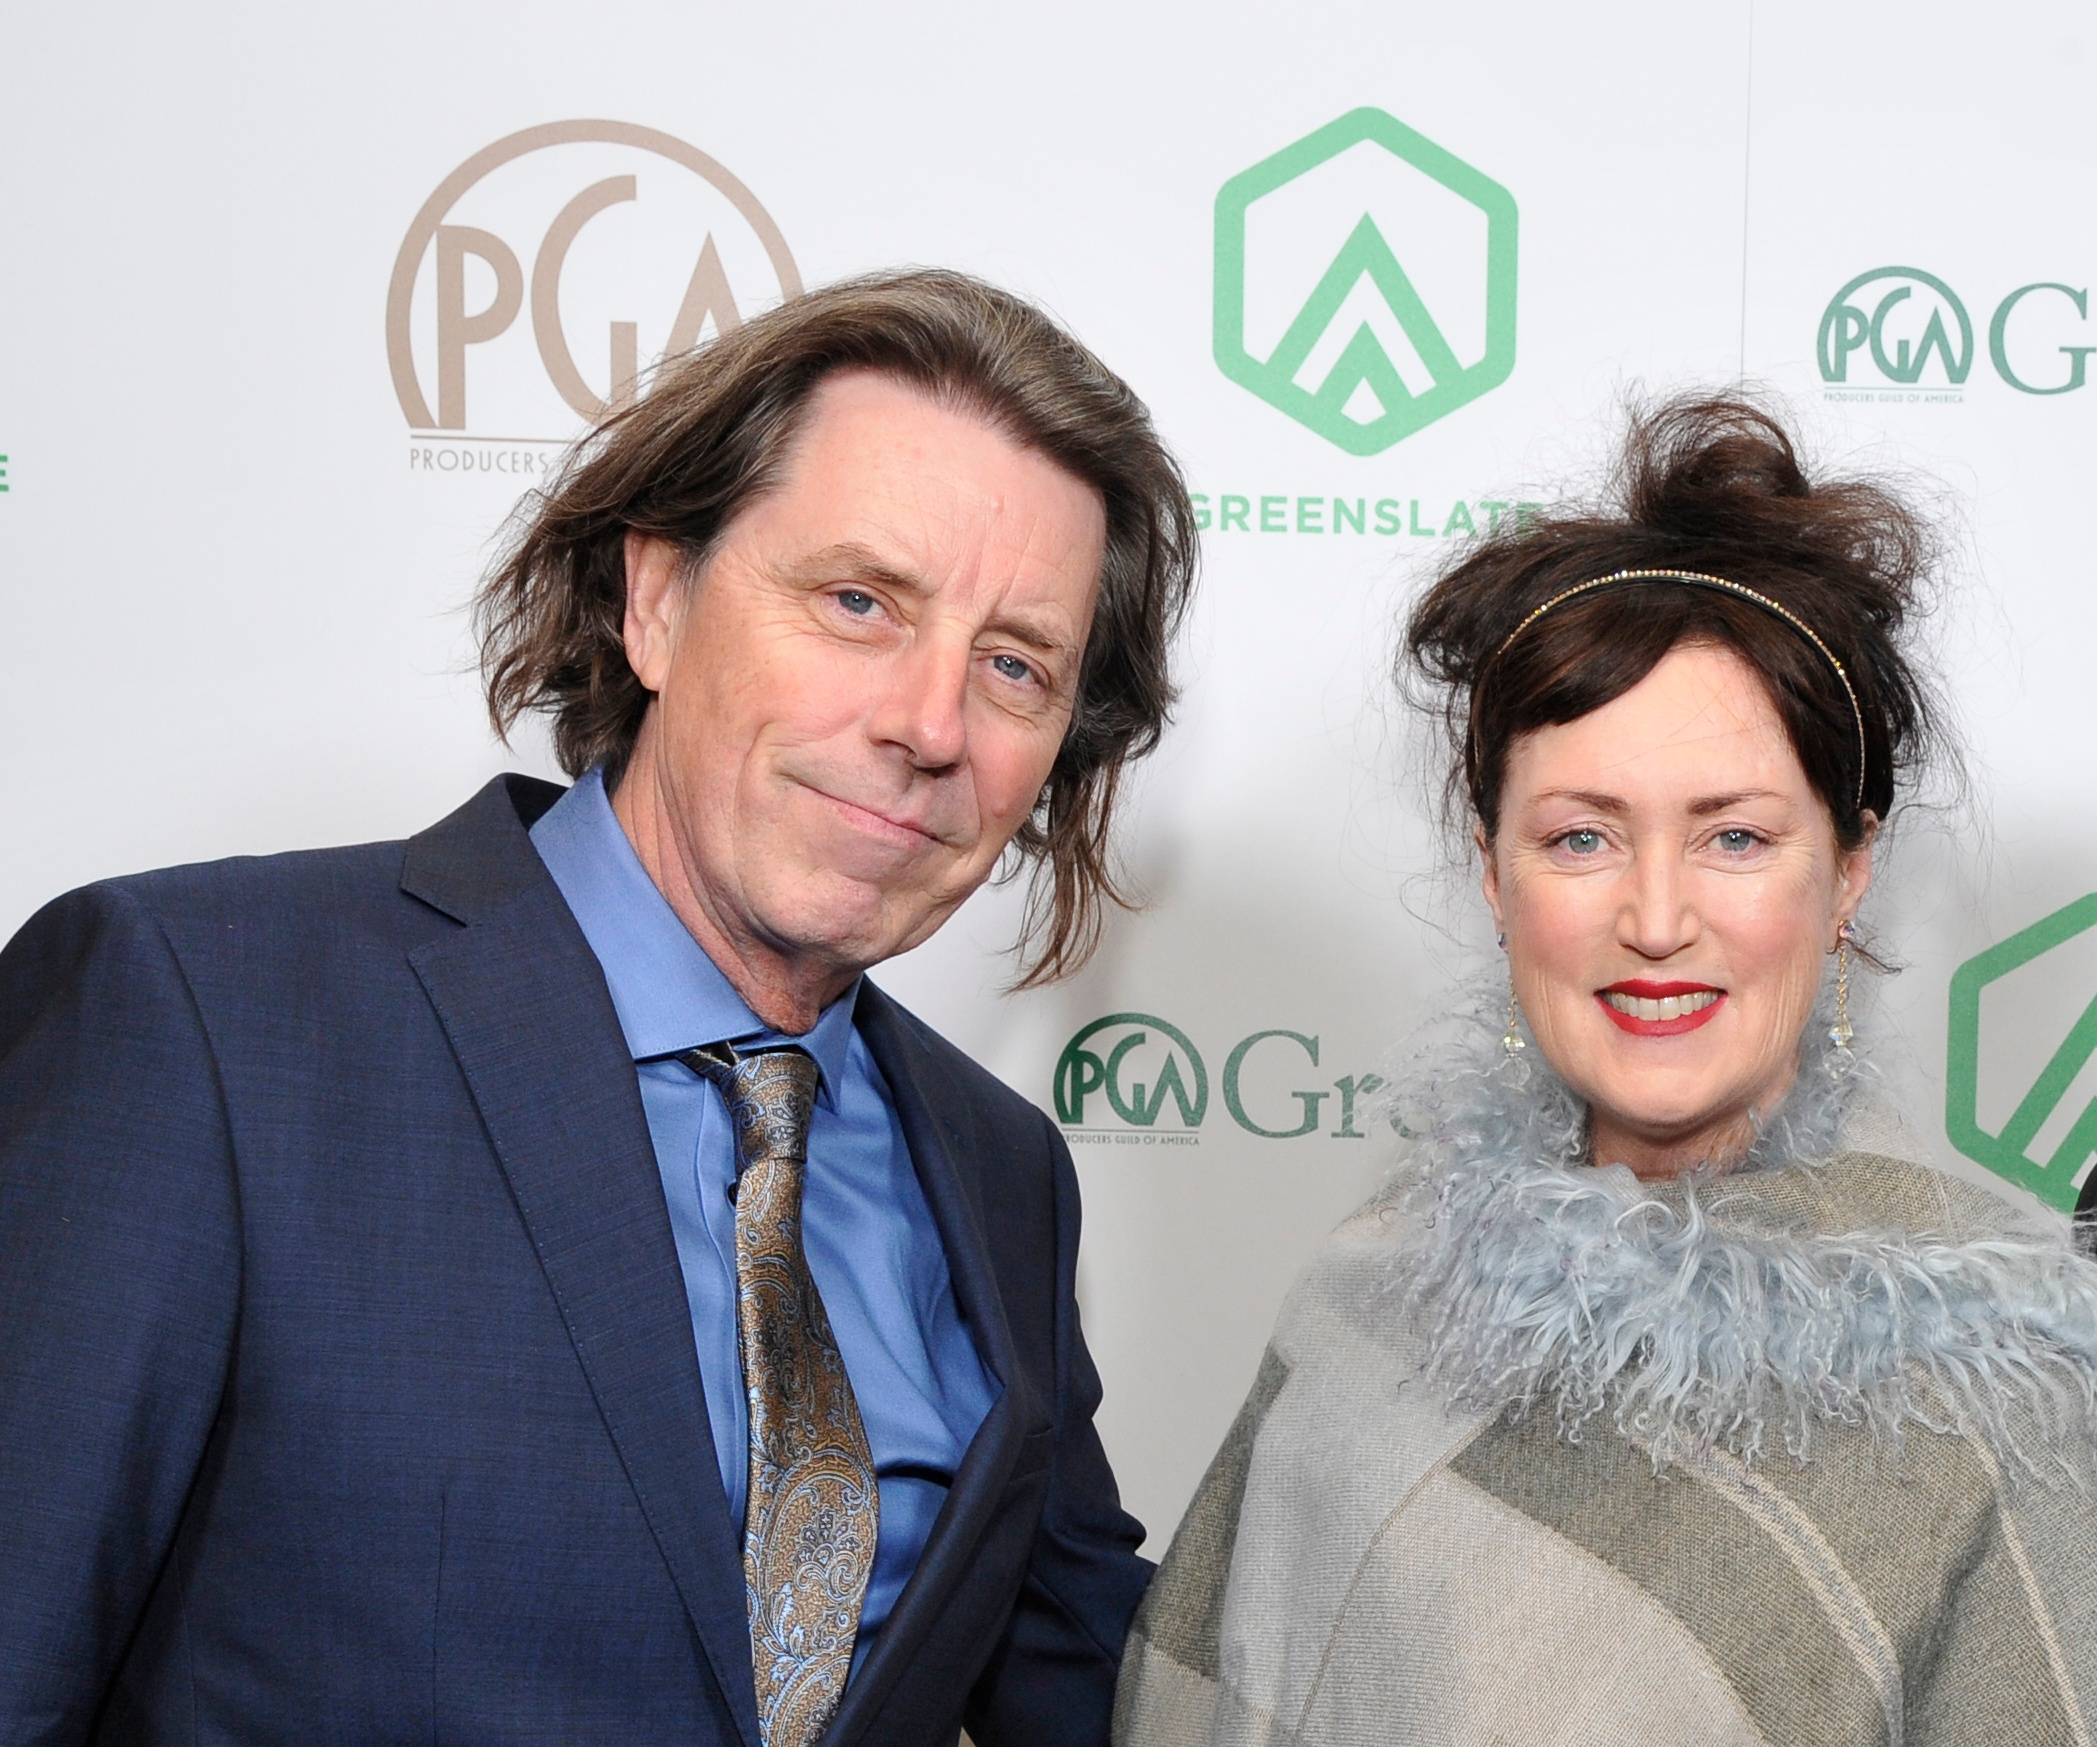 Producers Kenny Burke and Michelle Lindsay attend the 29th Annual Producers Guild Awards supported by GreenSlate at The Beverly Hilton Hotel on January 20, 2018 in Beverly Hills, California. (Photo by John Sciulli/Getty Images for GreenSlate)